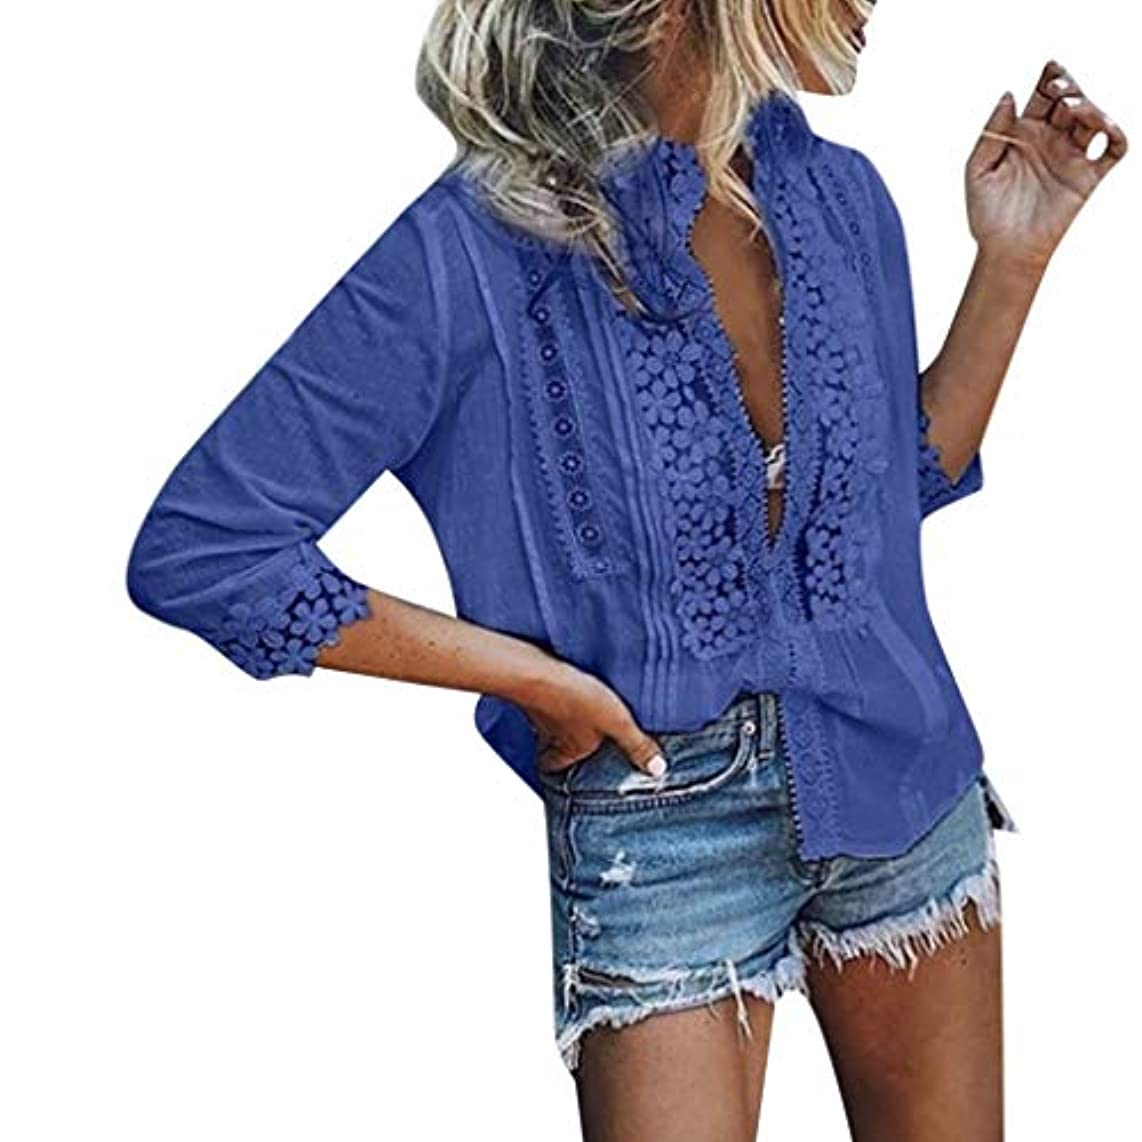 HIKO23 Women Fashion Solid Lace Tops Sexy V-Neck Blouse Half-Sleeve Shirts